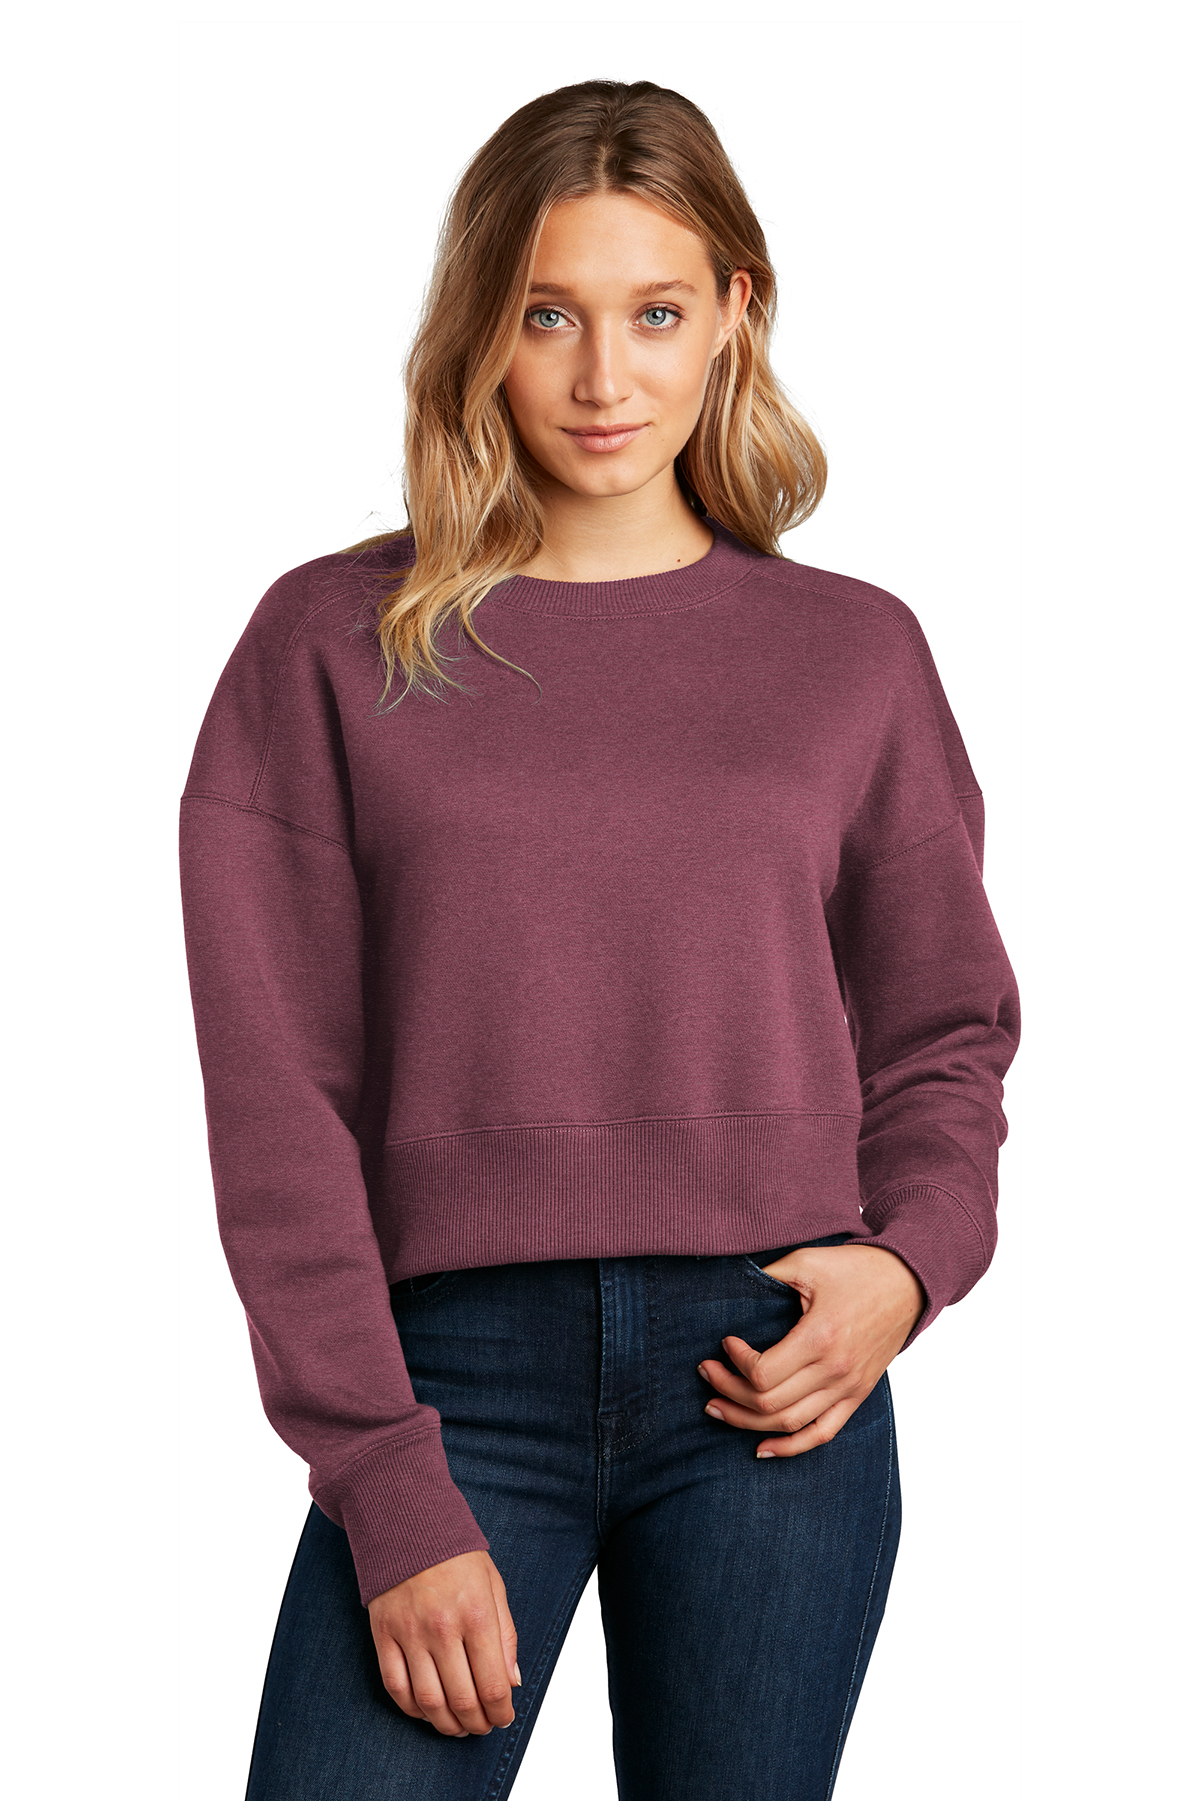 District ® DT1105 - Women's Perfect Weight ® Fleece Cropped Crew